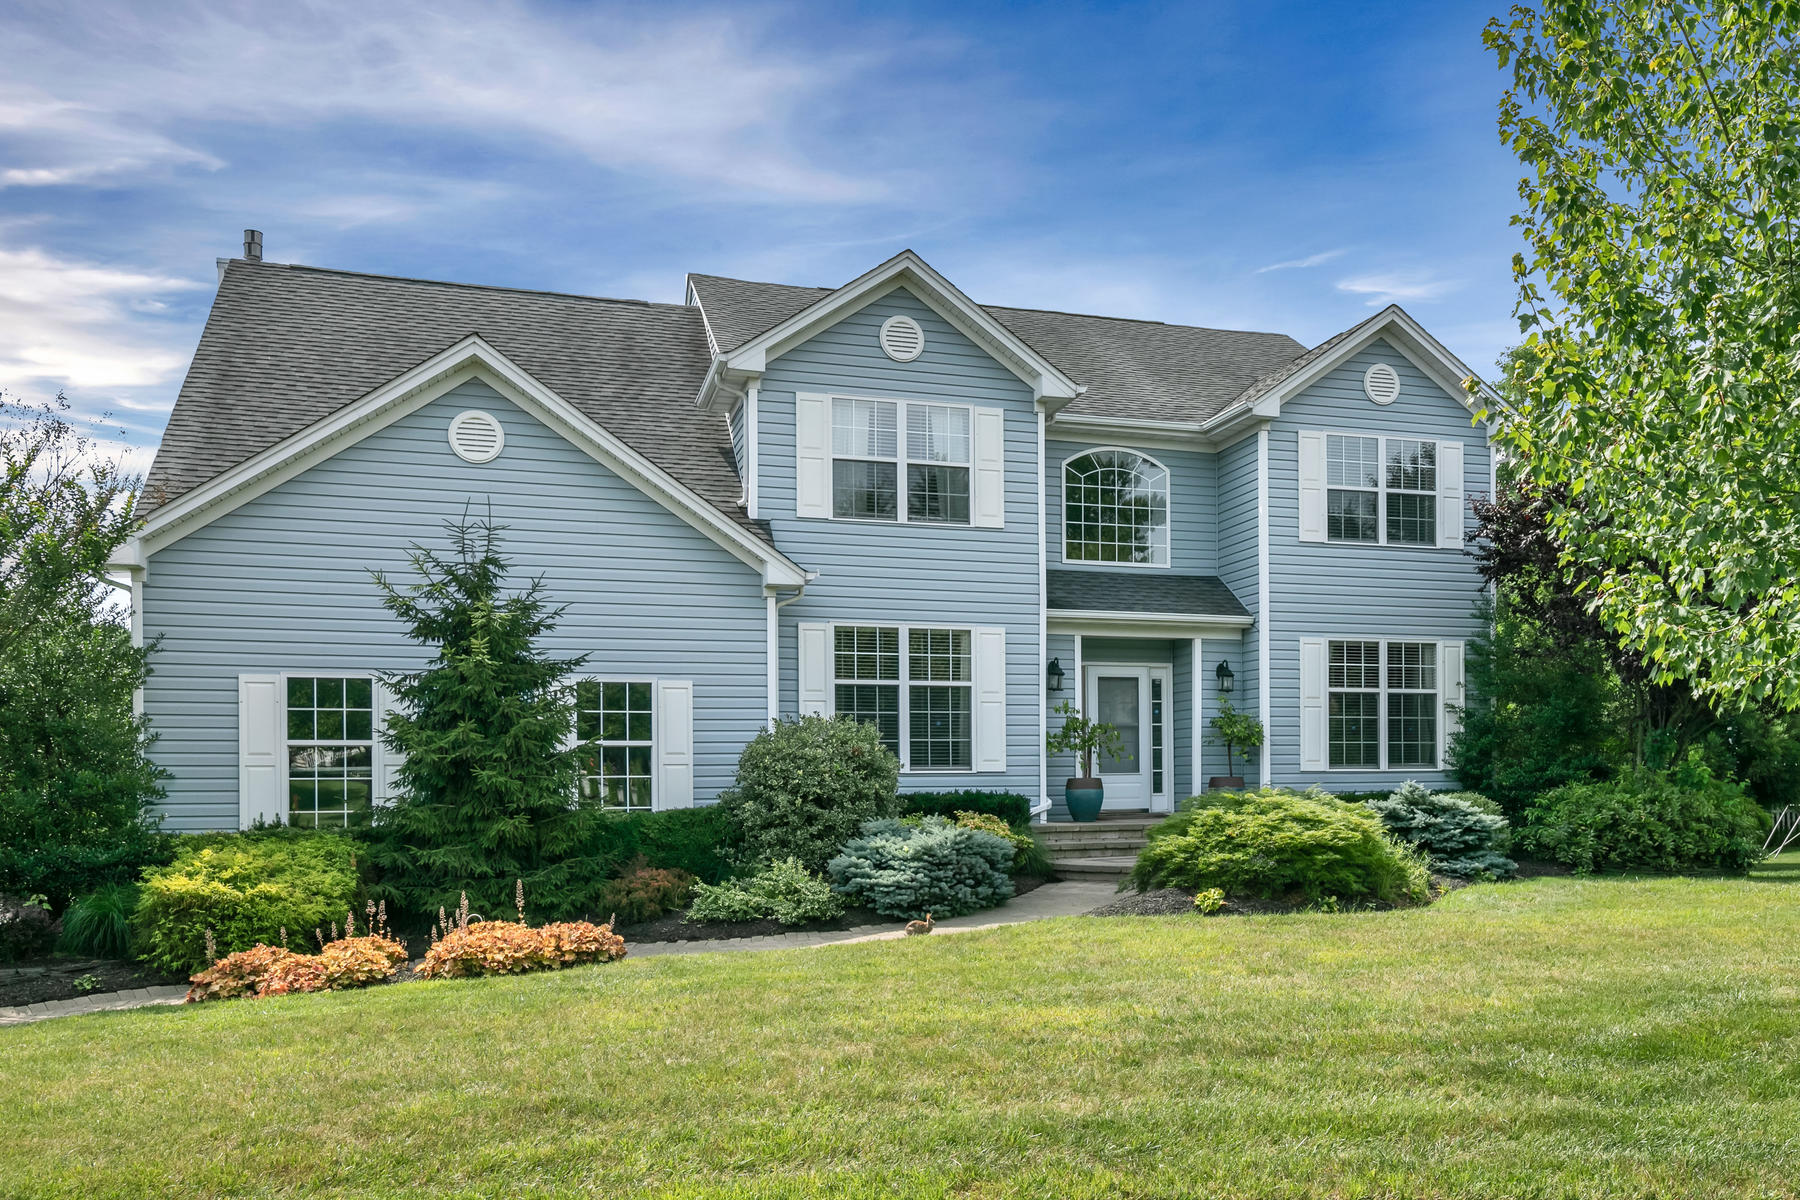 Single Family Homes for Sale at Spacious and Bright 1614 Barkalow Road Wall, New Jersey 07719 United States